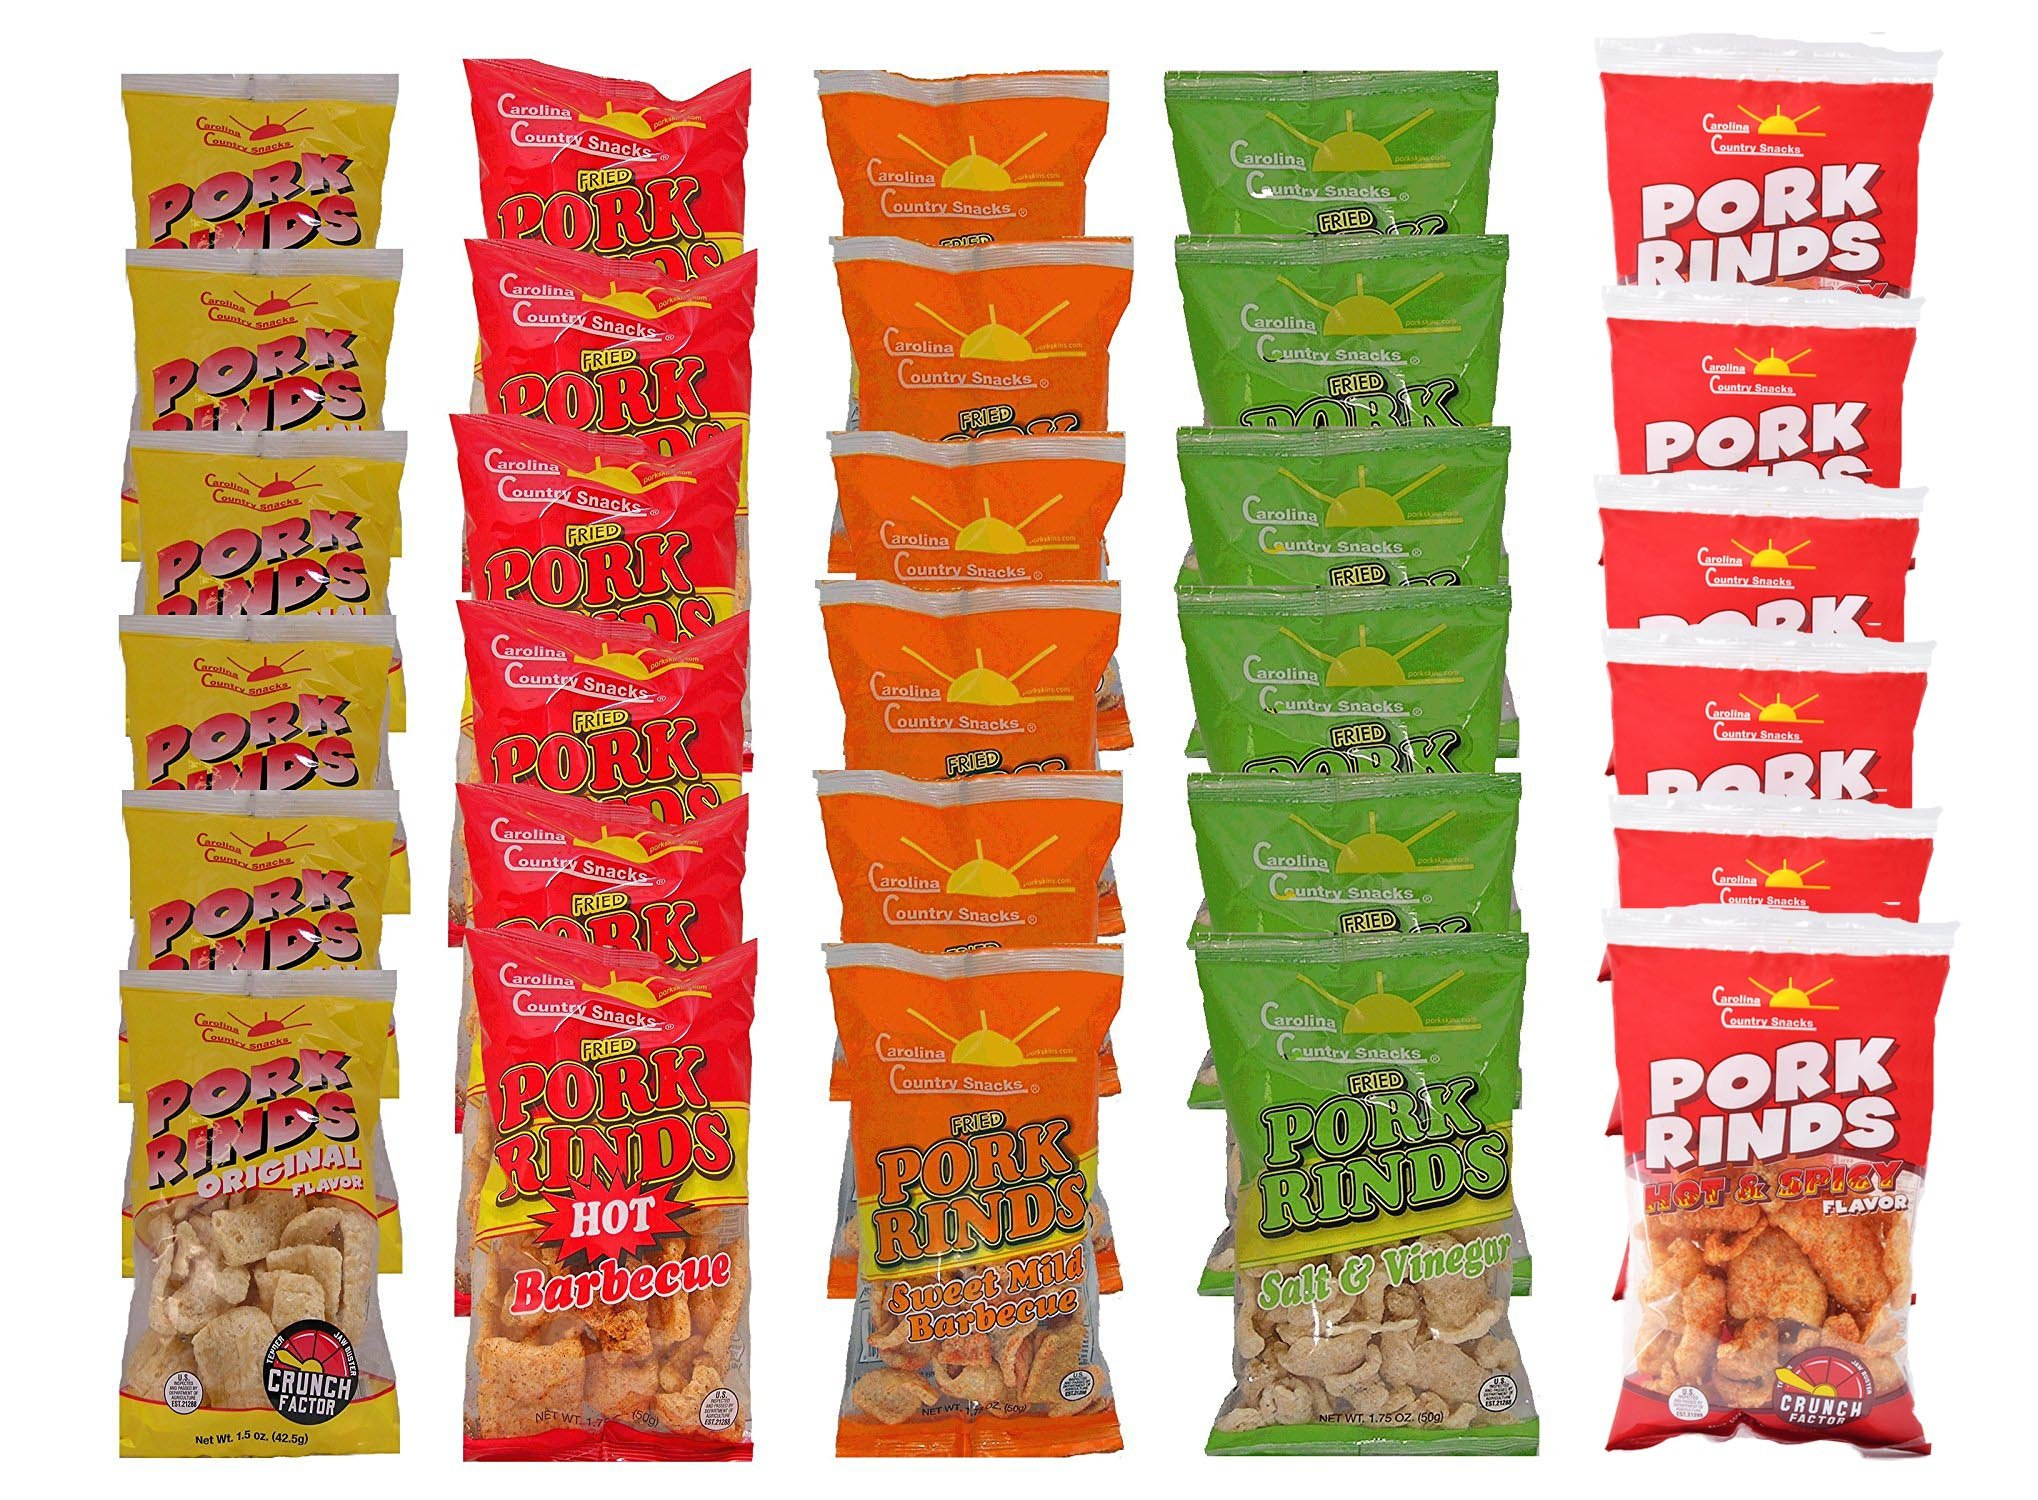 Fried Pork Rinds Mixed 30 bags (1.75oz)